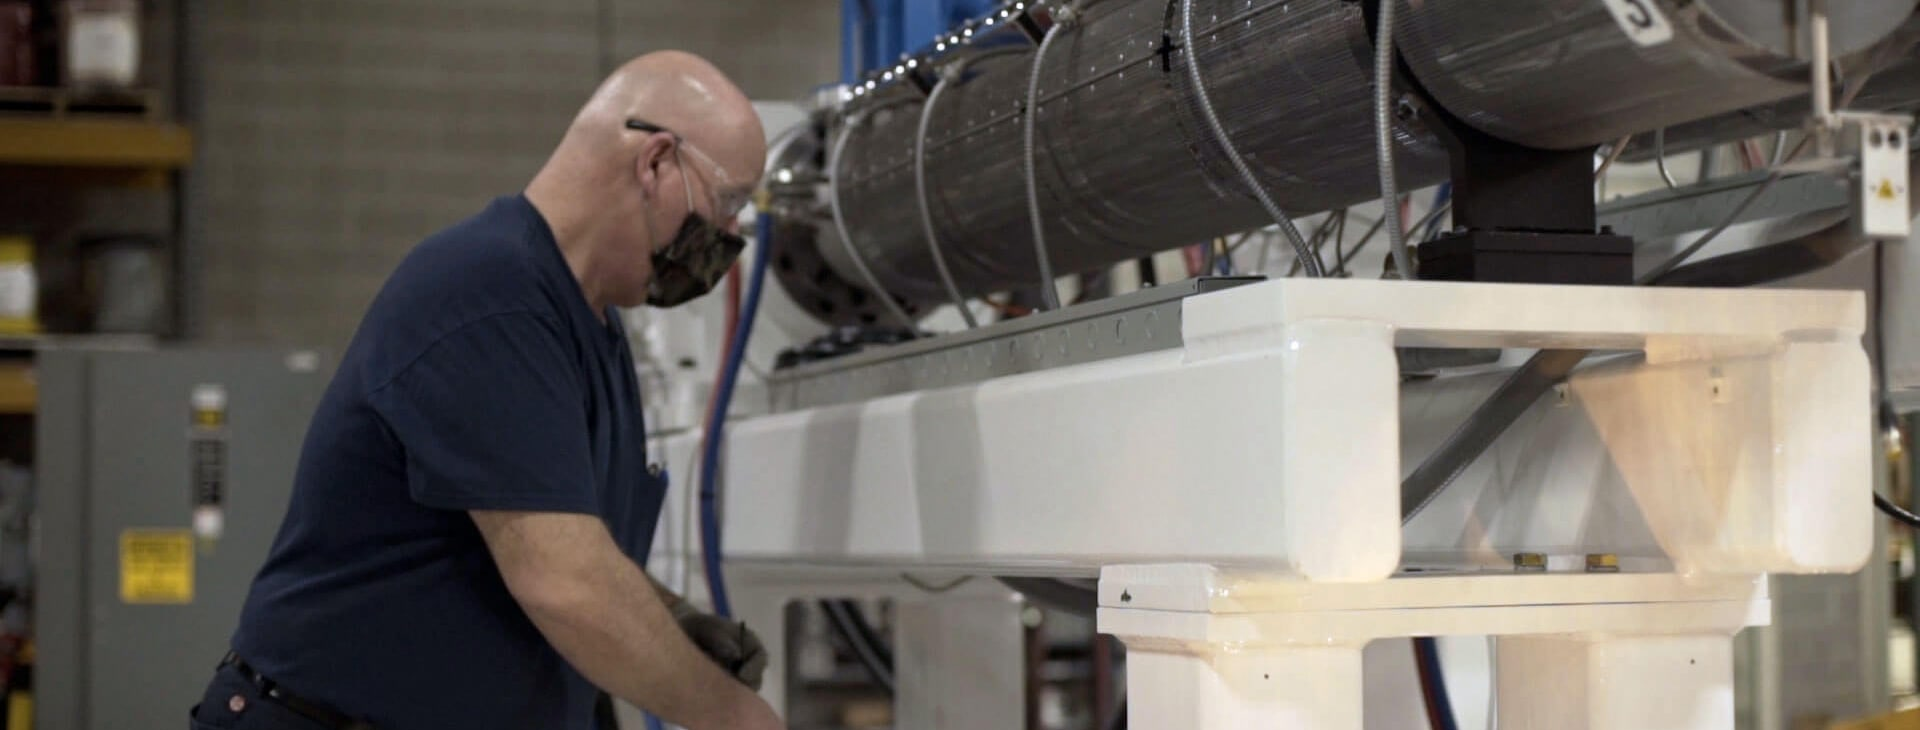 lifecycle management includes maintenance like this Graham employee working on an extruder